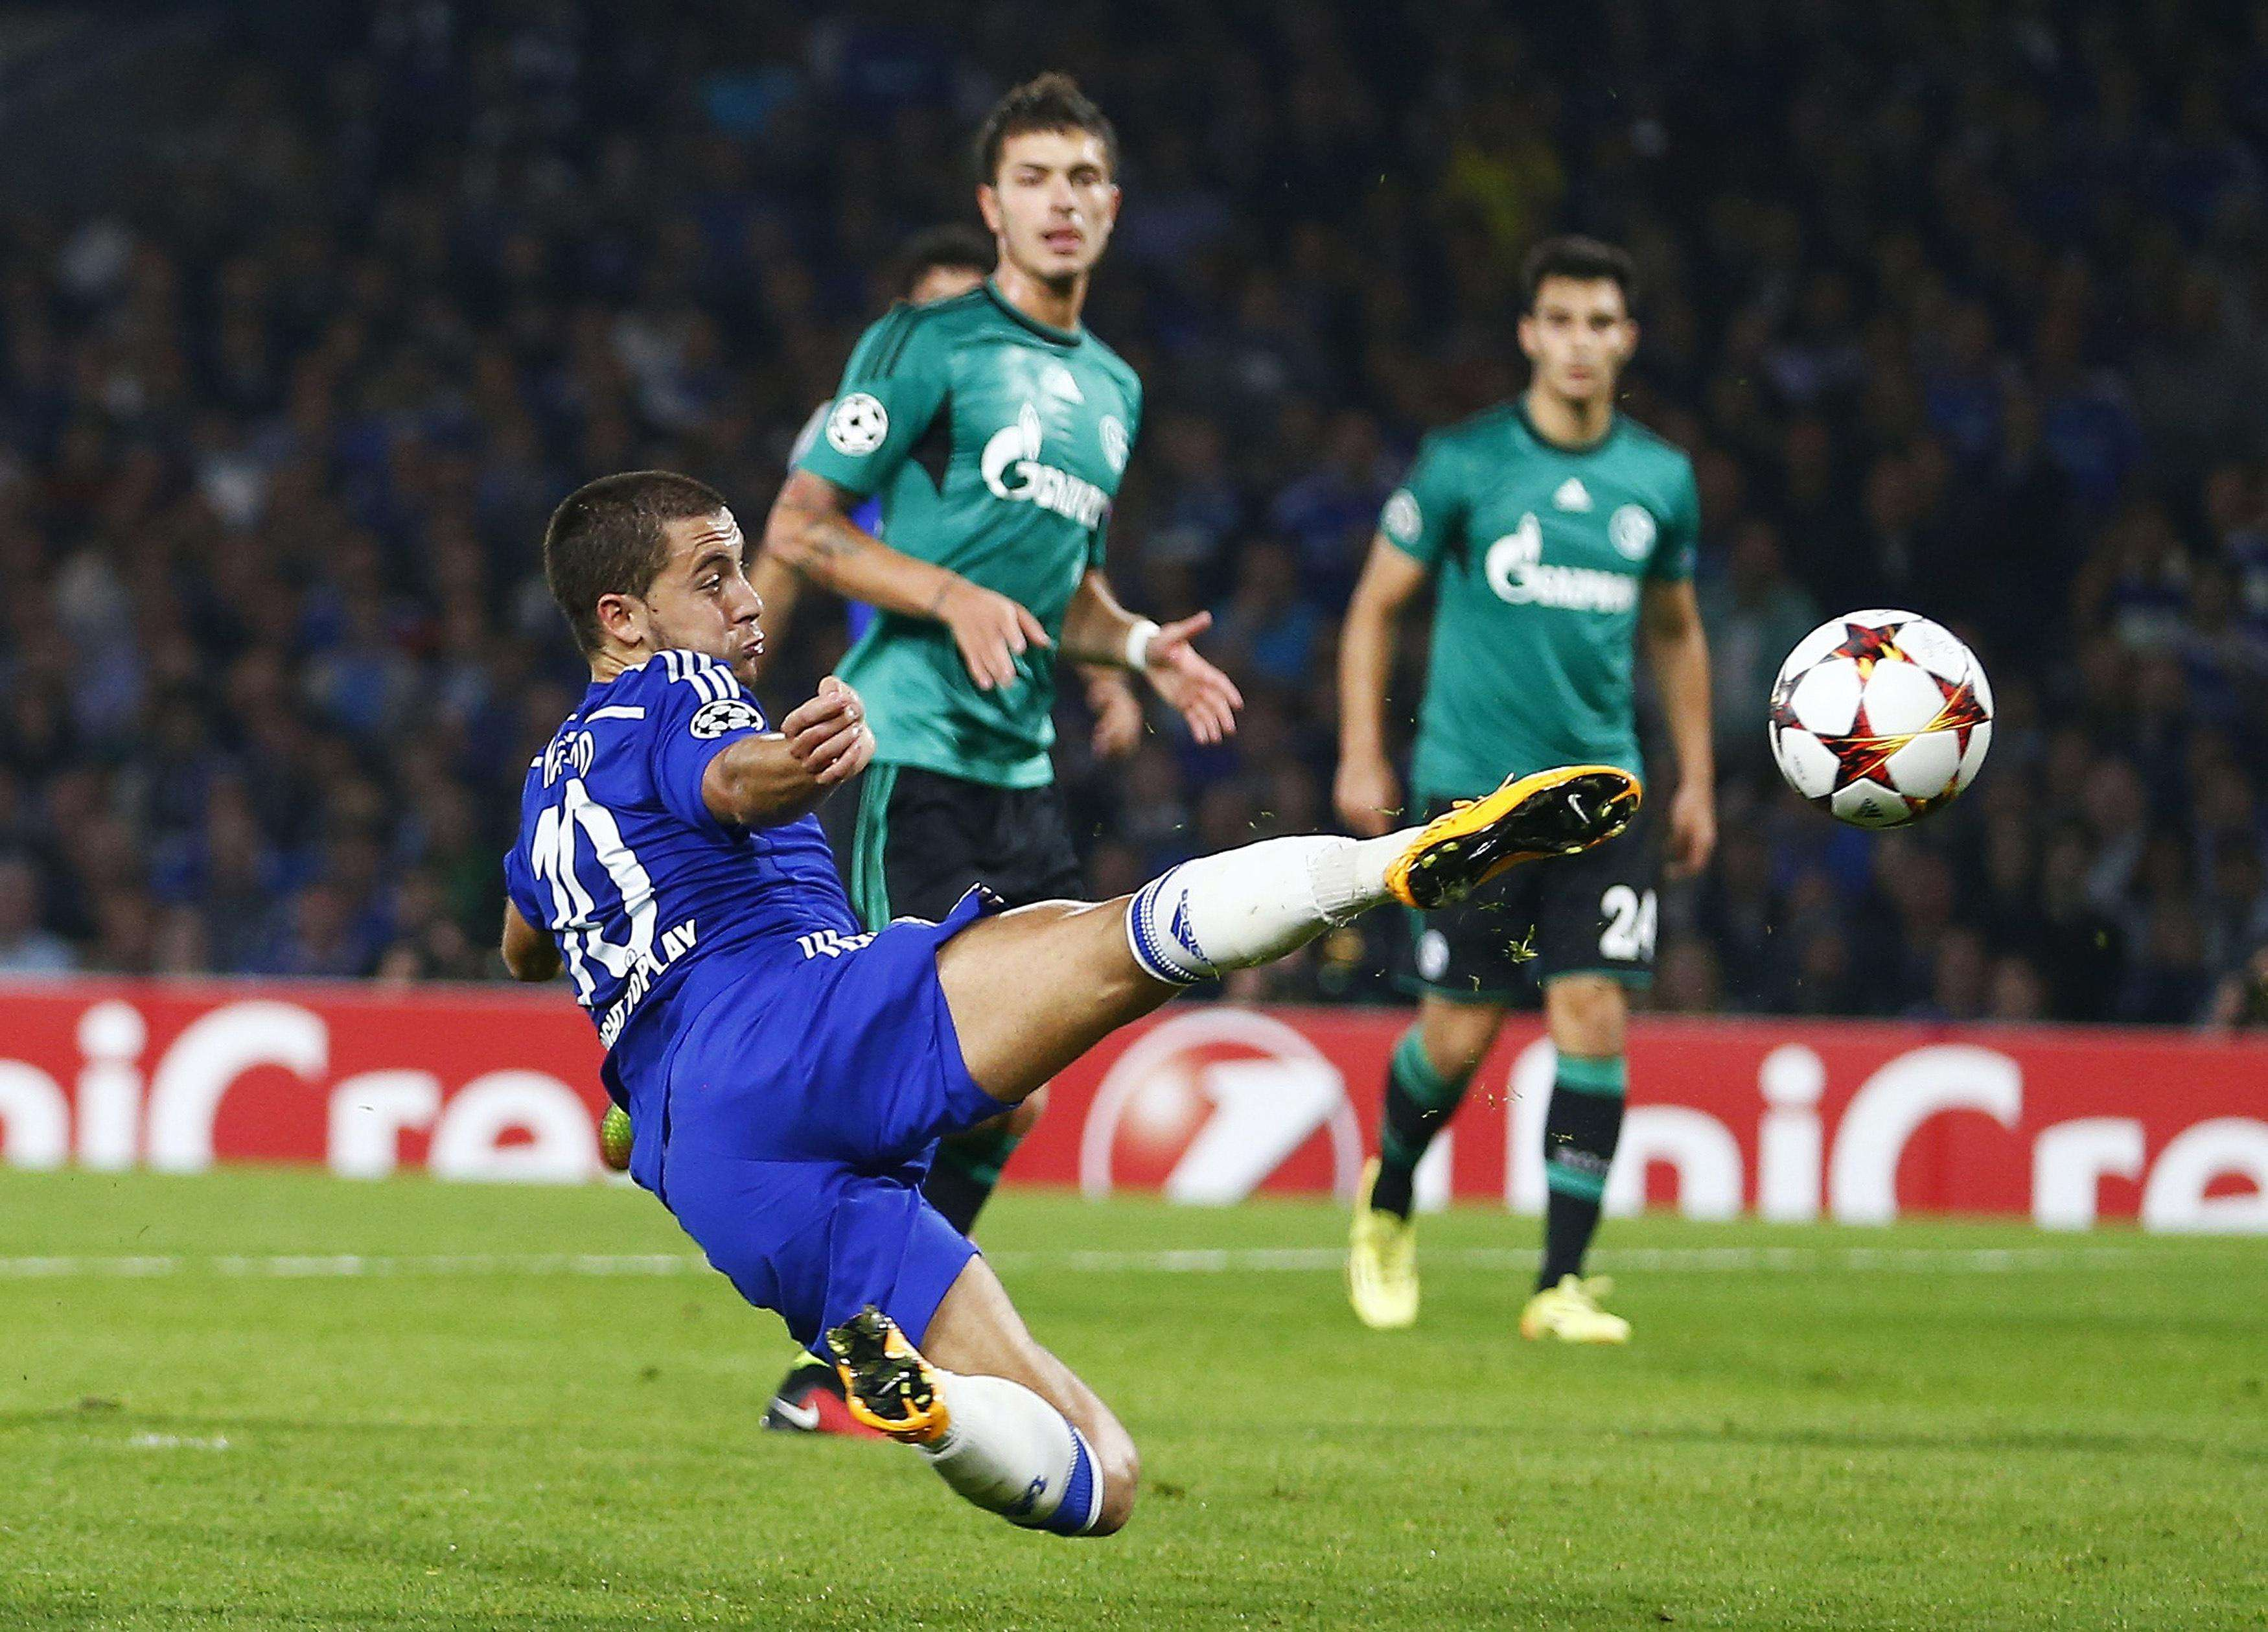 Chelsea's Eden Hazard lunges for the ball during their Champions League soccer match against Schalke 04 at Stamford Bridge in London September 17, 2014. REUTERS/Andrew Winning (BRITAIN - Tags: SPORT SOCCER) Foto: ANDREW WINNING/REUTERS